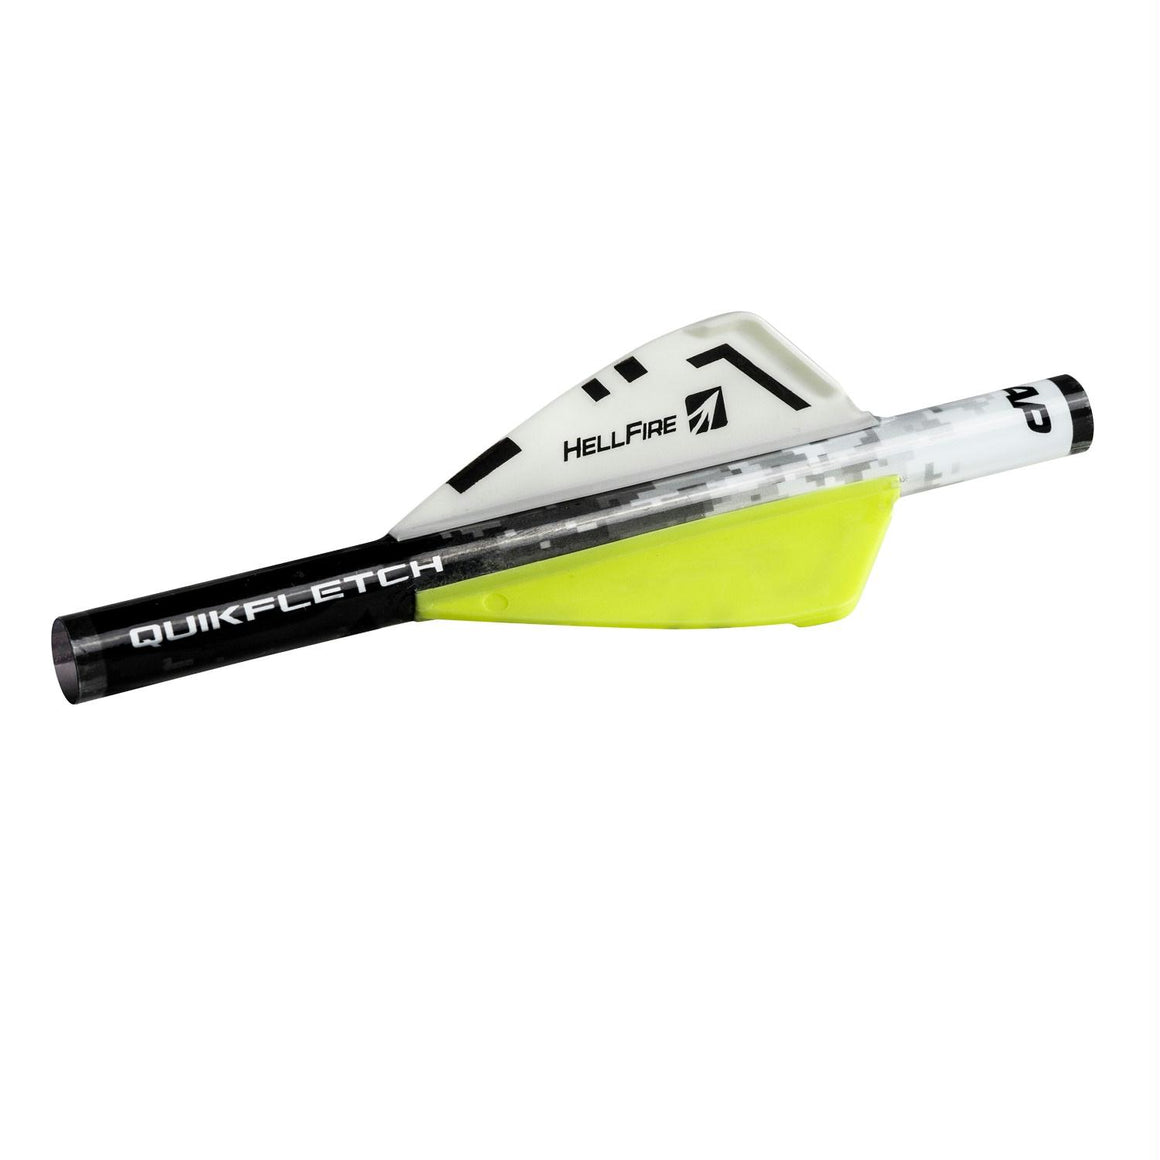 NAP Quikfletch 2in Hellfire  -6 Pack White-Yellow-Yellow